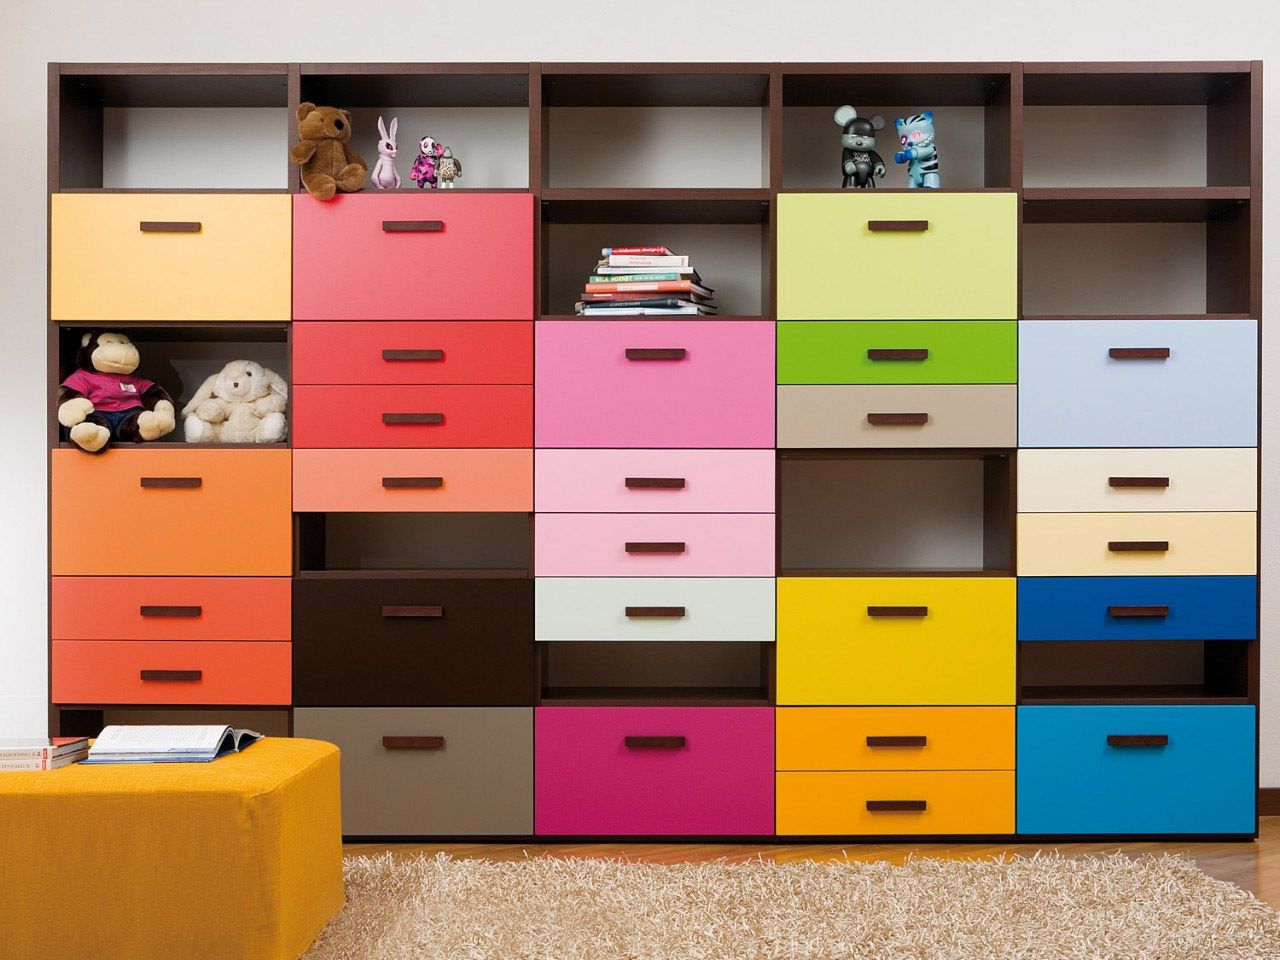 Dearkids armario y estanter a multicolor librer as - Armario estanteria ...